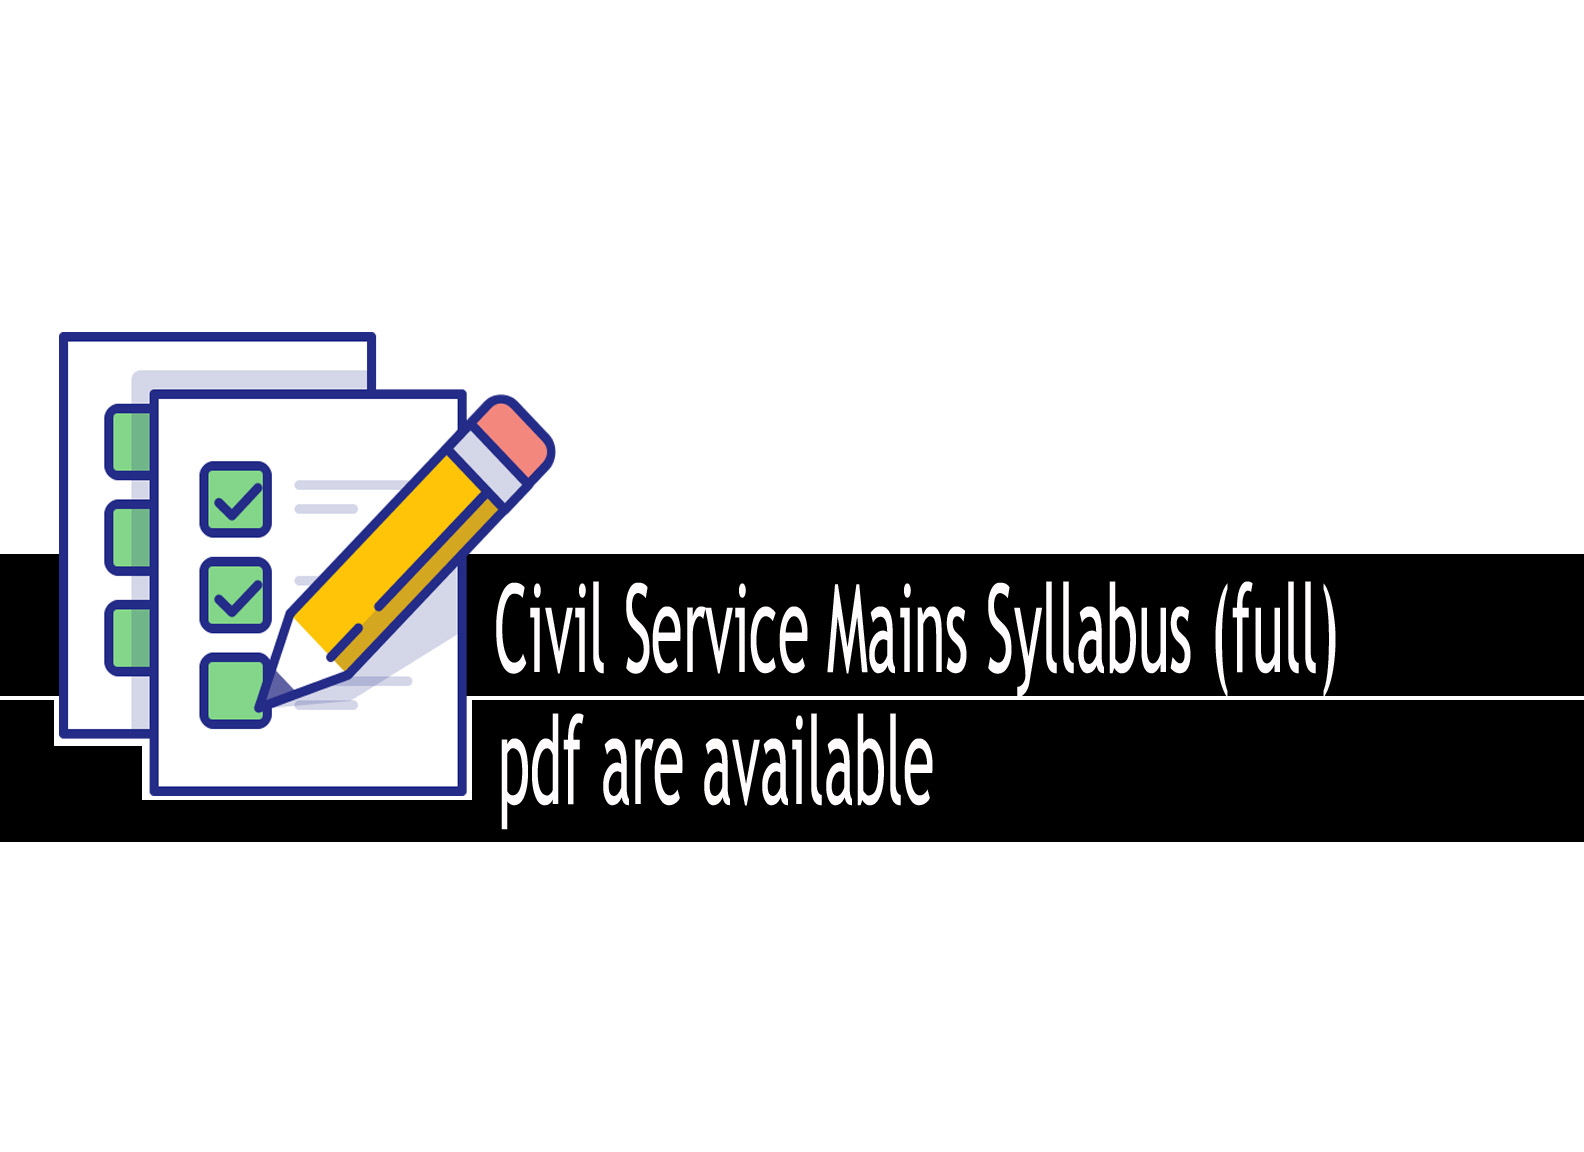 Here you can get full syllabus of civil service examination with free pdf .     Srsalman upsc syllabus, srssalma syllabus, upsc syllabus srsalman, ias syllabus srsalman, srsalman ias syllabus, ips syllabus,  upsc mains syllabus pdf upsc mains syllabus in marathi upsc mains syllabus in hindi upsc mains syllabus break up upsc mains syllabus in hindi pdf upsc mains syllabus 2020 in hindi upsc mains syllabus byju upsc mains syllabus pdf official upsc mains syllabus and books upsc mains syllabus anthropology upsc mains syllabus and marks upsc mains syllabus and pattern upsc mains syllabus and exam pattern upsc mains syllabus and book list upsc mains syllabus agriculture upsc mains syllabus anthropology pdf upsc mains syllabus and subjects upsc mains syllabus breakdown upsc mains syllabus by drishti upsc mains syllabus books upsc mains syllabus before 2013 upsc mains syllabus botany upsc mains syllabus by insight upsc mains botany syllabus pdf bpsc mains syllabus bpsc mains syllabus in hindi bpsc mains syllabus 2019 in hindi bpsc mains syllabus in english bpsc mains syllabus 2019 pdf bpsc mains syllabus and pattern bpsc mains syllabus 2019 bpsc mains syllabus of maths bpsc mains syllabus in hindi pdf download bpsc mains syllabus of hindi literature upsc mains syllabus chemistry upsc mains syllabus clear ias upsc mains syllabus commerce upsc mains syllabus civil services upsc mains syllabus career india upsc mains syllabus change 2013 upsc mains syllabus change upsc mains syllabus copy upsc mains syllabus cse upsc main syllabus.com upsc mains syllabus download upsc mains syllabus detailed pdf upsc mains syllabus download in hindi upsc mains syllabus doc upsc mains detailed syllabus in hindi ias mains syllabus download upsc mains detailed syllabus 2019 upsc mains syllabus explained upsc mains syllabus economics upsc mains syllabus english upsc mains syllabus electrical engineering upsc mains syllabus english literature upsc mains exam syllabus upsc mains essay syllabus upsc mains exam syllabus in hindi upsc mains ethics syllabus upsc mains exam syllabus pdf upsc mains syllabus for geography upsc mains syllabus for history upsc mains syllabus for agriculture upsc mains syllabus for optional subjects upsc mains syllabus for mathematics upsc mains syllabus for political science upsc mains syllabus for economics upsc mains syllabus gs upsc mains syllabus geography upsc mains syllabus general studies upsc mains syllabus geography optional upsc mains syllabus gs paper 2 upsc mains syllabus gs score upsc mains syllabus gs 3 upsc mains syllabus gazette upsc mains syllabus gradeup upsc mains syllabus hindi upsc mains syllabus hindi pdf upsc mains syllabus history upsc mains syllabus hindi literature upsc mains syllabus hindi medium upsc mains syllabus history in hindi upsc mains syllabus history optional upsc mains syllabus history pdf upsc mains syllabus hindi download ias mains syllabus hindi upsc mains syllabus in english upsc mains syllabus in hindi pdf 2019 upsc mains syllabus in one page upsc mains syllabus in detail pdf upsc mains syllabus in telugu upsc mains syllabus jagran josh upsc mains ka syllabus upsc mains kannada syllabus ias mains ka syllabus ias mains ka syllabus in hindi ias mains kannada syllabus upsc syllabus for mains kannada literature उपस्क माईनस का सिलेबस upsc mains syllabus law upsc mains syllabus latest upsc mains law syllabus pdf upsc mains language syllabus upsc mains law syllabus in hindi upsc mains latest syllabus pdf ias mains law syllabus ias mains law syllabus pdf upsc mains syllabus marathi upsc mains syllabus mathematics upsc mains syllabus maths upsc mains syllabus management upsc mains syllabus mind map upsc mains syllabus mrunal pdf upsc mains mathematics syllabus pdf download upsc mains malayalam syllabus upsc mains syllabus neostencil upsc mains syllabus notification upsc mains new syllabus upsc mains new syllabus strategy upsc mains new syllabus pdf upsc mains syllabus wise notes upsc notification 2018 mains syllabus upsc mains syllabus of geography upsc mains syllabus official upsc mains syllabus of political science upsc mains syllabus of physics upsc mains syllabus of economics upsc mains syllabus of chemistry upsc mains syllabus of zoology upsc mains syllabus of philosophy upsc mains syllabus pdf in marathi upsc mains syllabus pdf in hindi upsc mains syllabus paper 1 upsc mains syllabus pdf vision upsc mains syllabus paper 2 upsc mains syllabus paper 3 ias mains syllabus quora upsc mains qualifying papers syllabus upsc mains question paper syllabus upsc mains english qualifying paper syllabus upsc mains hindi qualifying paper syllabus upsc mains syllabus sarkari result ias mains syllabus sarkari result upsc mains rural development syllabus upsc mains political science and international relations syllabus upsc mains political science and international relations syllabus pdf upsc mains syllabus subtopics upsc mains syllabus sociology upsc mains sociology syllabus pdf upsc mains sociology syllabus in hindi upsc mains statistics syllabus upsc mains sanskrit syllabus upsc mains sanskrit syllabus pdf upsc mains syllabus topic wise pdf upsc mains syllabus tamil upsc mains syllabus topic wise upsc mains syllabus topic wise in hindi upsc mains syllabus time table 2019 upsc mains telugu syllabus upsc mains tamil syllabus pdf ias mains tamil syllabus ias mains telugu syllabus upsc mains syllabus unacademy upsc mains urdu syllabus ias mains urdu syllabus upsc mains syllabus upsc upsc mains syllabus pdf upsc.gov.in upsc mains syllabus 2019 upsc.gov.in upsc mains syllabus 2018 upsc.gov.in upsc mains syllabus pdf in english upsc mains syllabus vision upsc mains syllabus vajiram upsc mains syllabus video ias mains syllabus video ias mains syllabus vision ias upsc mains syllabus with marks upsc mains syllabus word file upsc mains syllabus weightage upsc mains syllabus official website www.upsc mains syllabus www.ias mains syllabus.com www.upsc.gov.in mains syllabus upsc mains syllabus youtube upsc mains syllabus zoology upsc mains zoology syllabus pdf ias mains syllabus zoology ias mains zoology syllabus pdf upsc mains optional zoology syllabus upsc cse mains zoology syllabus upsc mains gs 1 syllabus in hindi upsc mains paper 1 syllabus in hindi upsc mains gs 1 syllabus pdf upsc mains paper 1 syllabus pdf upsc mains syllabus gs paper 1 ias mains syllabus paper 1 upsc mains gs paper 1 syllabus in hindi paper 1 upsc mains syllabus gs 1 upsc mains syllabus gs paper 1 upsc mains syllabus upsc group 1 mains syllabus upsc mains syllabus 2020 upsc mains syllabus 2019 in hindi upsc mains syllabus 2020 pdf download in hindi upsc mains syllabus 2021 upsc mains syllabus 2018 upsc mains syllabus 2019 in hindi pdf download upsc mains syllabus 2018 pdf upsc mains syllabus 2018 pdf download paper 2 upsc mains syllabus gs 2 upsc mains syllabus race 2 ias mains syllabus upsc mains paper 2 syllabus in hindi upsc mains paper 2 syllabus pdf upsc mains gs paper 2 syllabus upsc mains gs paper 2 syllabus in hindi upsc mains gs paper 2 syllabus pdf upsc mains paper 3 syllabus pdf upsc mains syllabus gs paper 3 upsc mains paper 3 syllabus in hindi upsc mains gs paper 3 syllabus in hindi upsc mains general studies paper 3 syllabus how to cover upsc mains syllabus in 3 months paper 3 upsc mains syllabus gs 3 upsc mains syllabus paper 3 upsc mains 2018 syllabus paper 3 upsc mains 2017 syllabus upsc mains gs paper 3 syllabus upsc mains syllabus for english literature paper 4 upsc mains syllabus upsc mains gs 4 syllabus upsc mains gs paper 4 syllabus upsc mains gs paper 4 syllabus in hindi upsc mains gs paper 4 syllabus pdf upsc mains paper 5 syllabus upsc main paper 1 syllabus upsc mains detailed syllabus upsc mains detailed syllabus gs score upsc mains detailed syllabus in hindi upsc mains detailed syllabus 2018 detailed analysis of upsc mains syllabus upsc cse mains detailed syllabus upsc prelims and mains detailed syllabus upsc ias mains detailed syllabus upsc mains detailed syllabus pdf upsc mains detailed syllabus 2019 upsc mains details syllabus detailed mains syllabus for upsc detailed syllabus for upsc mains pdf upsc mains syllabus gs score gs mains detailed syllabus gs score upsc detailed syllabus gs score upsc syllabus gs score ias syllabus gs score upsc mains syllabus in detail detailed syllabus of upsc mains detailed syllabus of upsc mains pdf detailed syllabus of upsc mains 2018 detailed syllabus of upsc mains in hindi detailed syllabus of upsc mains gs score detailed syllabus of upsc mains 2020 detailed syllabus of upsc gs score ias mains syllabus in hindi ias mains syllabus in hindi pdf ias mains syllabus 2020 pdf ias mains syllabus books ias mains syllabus quora ias mains syllabus of geography ias mains syllabus for mathematics ias mains syllabus 2020 ias mains syllabus and books ias mains syllabus and pattern ias mains syllabus analysis ias mains syllabus and subjects upsc mains syllabus analysis upsc mains syllabus and books ias mains anthropology syllabus upsc mains syllabus and pattern ias mains agriculture syllabus upsc mains syllabus anthropology upsc mains syllabus break up upsc mains syllabus byju's upsc mains syllabus books ias mains botany syllabus upsc mains syllabus botany upsc mains syllabus by insight upsc mains syllabus before 2013 ias mains bengali syllabus ias mains syllabus civil engineering ias mains syllabus chemistry upsc mains syllabus chemistry ias mains commerce syllabus upsc mains syllabus commerce ias mains complete syllabus ias mains chemistry syllabus pdf upsc mains syllabus career india upsc mains syllabus change 2013 upsc mains syllabus clearias ias mains syllabus download ias mains syllabus download in hindi ias mains syllabus detailed upsc mains syllabus download upsc mains syllabus download pdf upsc mains syllabus detailed upsc mains syllabus detailed pdf upsc mains syllabus drishti upsc mains syllabus decoding ias mains syllabus english ias mains economics syllabus upsc mains syllabus explained upsc mains syllabus economics ias mains essay syllabus ias mains economics syllabus in hindi upsc mains syllabus electrical engineering ias mains ethics syllabus ias mains economics syllabus pdf ias mains syllabus for political science ias mains syllabus for civil engineering ias mains syllabus for zoology ias mains syllabus for commerce ias mains syllabus for agriculture ias mains syllabus for economics ias mains syllabus for sociology ias mains syllabus geography ias mains syllabus gs ias mains syllabus general studies upsc mains syllabus gs 1 upsc mains syllabus geography upsc mains syllabus gs gs score ias mains syllabus ias mains gs syllabus in hindi upsc mains syllabus gs 2 gs ias mains syllabus ias g.s. syllabus mains ias mains gs paper 1 syllabus ias mains gs paper 2 syllabus ias mains gs paper 1 syllabus in hindi ias mains gs paper syllabus ias mains gs 1 syllabus ias mains gs paper 2 syllabus in hindi ias mains syllabus hindi ias mains syllabus hindi pdf ias mains syllabus hindi medium ias mains syllabus hindi me ias mains syllabus history upsc mains syllabus hindi upsc mains syllabus hindi pdf upsc mains syllabus hindi literature upsc mains syllabus history ias mains history syllabus in hindi ias mains syllabus in english ias mains syllabus in pdf ias mains syllabus in hindi 2018 ias mains syllabus in details upsc mains syllabus jagran josh ias mains ka syllabus ias mains ka syllabus in hindi ias mains kannada syllabus upsc mains ka syllabus upsc mains kannada syllabus upsc mains syllabus in kannada medium ias mains optional kannada syllabus ias kannada mains exam syllabus ias mains law syllabus upsc mains syllabus law ias mains law syllabus pdf upsc mains syllabus latest upsc mains law syllabus pdf upsc mains language syllabus upsc mains law syllabus in hindi upsc mains latest syllabus pdf ias mains hindi literature syllabus ias mains syllabus mathematics ias mains syllabus medical science upsc mains syllabus mrunal ias mains maths syllabus upsc mains syllabus mathematics upsc mains syllabus mind map ias mains management syllabus ias mains maths syllabus in hindi pdf upsc mains syllabus medical science upsc mains syllabus maths upsc mains syllabus notification upsc mains syllabus neostencil upsc mains new syllabus upsc mains new syllabus strategy upsc mains new syllabus pdf upsc mains syllabus wise notes new ias mains syllabus ias mains syllabus of mathematics ias mains syllabus of political science ias mains syllabus of sociology ias mains syllabus of philosophy upsc mains syllabus official website upsc mains syllabus optional upsc mains syllabus optional subject upsc mains syllabus of political science ias mains syllabus pdf ias mains syllabus pdf in hindi ias mains syllabus pdf free download ias mains syllabus paper 1 ias mains syllabus pattern ias mains syllabus pdf 2019 ias mains syllabus pdf 2018 upsc mains syllabus quora ias mains english qualifying paper syllabus ias mains hindi qualifying paper syllabus upsc mains syllabus sarkari result race 2 ias mains syllabus ias mains political science and international relations syllabus ias mains syllabus sociology upsc mains syllabus subject wise upsc mains syllabus sociology upsc mains syllabus subtopics ias mains subject syllabus ias mains sociology syllabus in hindi ias mains sanskrit syllabus ias mains sociology syllabus pdf ias mains g.s syllabus upsc mains syllabus topic wise upsc mains syllabus topic wise pdf upsc mains syllabus topic wise in hindi ias mains tamil syllabus ias mains telugu syllabus upsc mains syllabus tamil upsc mains telugu syllabus upsc mains tamil syllabus pdf ias mains syllabus upsc upsc mains syllabus unacademy ias mains urdu syllabus upsc mains urdu syllabus upsc ias mains syllabus in hindi upsc ias mains syllabus pdf upsc mains syllabus vision ias ias mains syllabus video upsc mains syllabus vision upsc mains syllabus vajiram upsc mains syllabus video ias mains syllabus vision ias upsc mains syllabus pdf vision vision ias mains syllabus pdf upsc mains syllabus with marks upsc mains syllabus word file upsc mains syllabus weightage upsc mains syllabus paper wise upsc mains syllabus youtube ias mains syllabus zoology upsc mains syllabus zoology ias mains zoology syllabus pdf upsc mains zoology syllabus pdf ias mains paper 1 syllabus in hindi upsc mains syllabus 2018-19 ias mains general studies 1 syllabus ias mains general studies paper 1 syllabus paper 1 upsc mains syllabus gs 1 upsc mains syllabus ias mains paper 1 syllabus ias mains syllabus 2019 in hindi pdf download ias mains syllabus 2018 ias mains syllabus 2018 pdf ias mains syllabus 2018 in hindi ias mains syllabus 2018 pdf download ias mains syllabus 2018 in hindi pdf download ias mains syllabus 2017 ias mains syllabus 2013 paper 2 upsc mains syllabus gs 2 upsc mains syllabus ias mains paper 2 syllabus ias mains paper 2 syllabus in hindi upsc mains syllabus paper 3 ias mains paper 3 syllabus paper 3 upsc mains syllabus gs 3 upsc mains syllabus paper 4 upsc mains syllabus ias mains paper 4 syllabus ias mains paper 5 syllabus ips mains syllabus pdf ips mains exam syllabus upsc ips mains syllabus upsc ips main exam syllabus upsc mains syllabus upsc mains syllabus in marathi upsc mains syllabus in hindi upsc mains syllabus break up upsc mains syllabus in marathi language upsc mains syllabus in hindi pdf upsc mains syllabus 2020 in hindi upsc mains syllabus pdf in english upsc mains syllabus byju upsc mains syllabus pdf official upsc mains syllabus for ips civil service mains syllabus pdf civil service mains syllabus in hindi civil service mains syllabus 2019 civil service mains syllabus 2018 civil service mains syllabus 2018 pdf civil services mains syllabus pdf download civil services mains syllabus in hindi pdf civil services mains syllabus general studies civil services mains syllabus and books upsc civil services syllabus mains books bpsc civil services mains syllabus west bengal civil service mains syllabus civil services mains chemistry syllabus civil service mains exam syllabus civil services mains economics syllabus civil services mains examination syllabus upsc civil service mains exam syllabus civil services mains mechanical engineering syllabus civil service exam 2019 mains syllabus civil service syllabus for mains civil service mains gs syllabus civil service mains geography syllabus civil service mains geography syllabus pdf upsc civil services mains geography syllabus civil service mains history syllabus haryana civil services mains syllabus upsc civil services mains syllabus in hindi indian civil services mains syllabus jpsc civil service mains syllabus civil services mains law syllabus civil services mains mathematics syllabus civil services mains management syllabus upsc civil services mains mathematics syllabus mizoram civil service mains syllabus mpsc civil services mains syllabus civil service mains malayalam optional syllabus civil service mains optional syllabus civil services mains psychology syllabus civil services mains philosophy syllabus civil services mains physics syllabus civil service mains sociology syllabus civil services mains optional subjects syllabus civil services mains medical science syllabus upsc civil service mains syllabus 2017 upsc civil services mains syllabus 2018 upsc civil service exam mains syllabus civil service mains zoology syllabuscse mains syllabus 2019 cse mains syllabus in hindi cse mains syllabus 2018 pdf cse mains syllabus 2018 civil services mains syllabus civil services mains syllabus pdf civil services mains syllabus pdf download civil services mains syllabus 2019 cse mains syllabus pdf upsc cse mains anthropology syllabus upsc cse mains public administration syllabus upsc cse pre and mains syllabus pdf upsc cse pre and mains syllabus upsc civil services syllabus mains books bpsc cse mains syllabus civil services mains chemistry syllabus civil services mains detailed syllabus upsc cse mains syllabus download cse mains economics syllabus civil services mains exam syllabus cse main exam syllabus civil services mains economics syllabus civil services mains examination syllabus civil services main exam syllabus pdf upsc cse mains english syllabus upsc cse mains exam syllabus upsc civil services mains exam syllabus civil services mains mechanical engineering syllabus upsc cse syllabus for mains syllabus for cse mains cse mains gs syllabus civil services mains geography syllabus civil services mains gs syllabus upsc cse mains geography syllabus upsc cse mains gs syllabus upsc civil services mains geography syllabus civil services main exam geography syllabus civil services mains history syllabus upsc cse mains syllabus in pdf upsc civil services mains syllabus in hindi civil services mains law syllabus upsc cse mains law syllabus cse mains maths syllabus civil services mains mathematics syllabus civil services mains management syllabus civil services mains maths syllabus upsc cse mains management syllabus upsc civil services mains mathematics syllabus opsc cse mains syllabus syllabus of cse mains civil services mains philosophy syllabus civil services mains physics syllabus civil services mains psychology syllabus cse mains syllabus 2019 pdf civil services mains optional subjects syllabus civil services mains political science syllabus civil services mains medical science syllabus upsc cse mains general studies syllabus upsc cse mains political science syllabus upsc mains syllabus cse upsc mains syllabus civil services upsc cse mains zoology syllabus civil services mains paper 1 syllabus upsc cse mains paper 1 syllabus upsc main exam syllabus upsc syllabus pdf download upsc syllabus pdf upsc syllabus in marathi upsc syllabus 2019 upsc syllabus in hindi upsc syllabus 2019 pdf upsc syllabus gs score upsc syllabus 2018 pdf upsc syllabus books upsc syllabus 2020 upsc syllabus and pattern upsc syllabus and books upsc syllabus anthropology upsc syllabus app upsc syllabus audio upsc syllabus and subjects upsc syllabus analysis in hindi upsc syllabus and eligibility upsc syllabus analysis pdf the upsc syllabus paper a upsc syllabus upsc syllabus byju's upsc syllabus breakup upsc syllabus by upsc upsc syllabus booklet upsc syllabus breakdown upsc syllabus book pdf upsc syllabus by drishti ias upsc syllabus botany upsc syllabus book in hindi pdf bpsc syllabus bpsc syllabus pdf bpsc syllabus in english bpsc syllabus 2019 bpsc syllabus 2020 bpsc syllabus in hindi bpsc syllabus in english pdf bpsc syllabus 2020 in hindi bpsc syllabus change bpsc syllabus 2020 pdf upsc syllabus cse upsc syllabus change upsc syllabus civil services upsc syllabus copy pdf upsc syllabus clear ias upsc syllabus cse pdf upsc syllabus cse 2020 upsc syllabus change news upsc syllabus chemistry upsc syllabus csat upsc c set syllabus upsc csat syllabus upsc c set syllabus in hindi upsc syllabus download pdf upsc syllabus detailed pdf upsc syllabus drishti upsc syllabus details upsc syllabus download in hindi pdf upsc syllabus detailed analysis upsc syllabus download 2019 upsc syllabus drishti ias in hindi upsc syllabus explained upsc syllabus english upsc syllabus economics upsc syllabus exam pattern upsc syllabus english pdf upsc syllabus engineering upsc syllabus ese upsc syllabus ethics upsc syllabus explanation upsc syllabus eligibility upsc syllabus from upsc website upsc syllabus for ips upsc syllabus for mains upsc syllabus for prelims 2020 upsc syllabus for civil services upsc syllabus for geography upsc syllabus for sociology upsc syllabus gs upsc syllabus geography upsc syllabus gs 1 upsc syllabus gs paper upsc syllabus gs 2 upsc syllabus gs 3 upsc syllabus gazette upsc syllabus geology upsc syllabus gradeup upsc g.s syllabus g s score upsc syllabus upsc syllabus hindi upsc syllabus history upsc syllabus hindi medium upsc syllabus hindi literature upsc syllabus hindi mains upsc syllabus history pdf upsc syllabus history hindi upsc syllabus hindi m upsc syllabus hindi language upsc syllabus history optional in hindi upsc syllabus ias upsc syllabus ips upsc syllabus in english upsc syllabus in detail upsc syllabus in marathi language pdf 2019 upsc syllabus in urdu upsc syllabus insights upsc syllabus ias 2020 upsc i as syllabus cds upsc i syllabus upsc syllabus i hindi upsc syllabus jagran josh upsc syllabus junior assistant upsc syllabus jobriya upsc syllabus job alert upsc syllabus jankari upsc je syllabus upsc je syllabus pdf upsc jee syllabus upsc judge syllabus upsc je syllabus 2018 upsc syllabus kya hai upsc syllabus ksg upsc syllabus kya hota hai upsc syllabus kannada upsc ka syllabus upsc ka syllabus in hindi upsc ka syllabus 2019 upsc ka syllabus kya hai upsc ka syllabus in hindi 2019 upsc ka syllabus hindi mai upsc k syllabus upsc का syllabus upsc syllabus law upsc syllabus list upsc syllabus latest upsc syllabus law optional upsc syllabus link upsc syllabus list in hindi upsc syllabus latest pdf upsc syllabus language upsc syllabus law pdf upsc syllabus lt grade teacher upsc syllabus mains upsc syllabus marathi upsc syllabus maths upsc syllabus mains in hindi upsc syllabus mind map upsc syllabus mrunal upsc syllabus medical science upsc syllabus mains optional upsc syllabus management mpsc syllabus mpsc syllabus in marathi mpsc syllabus 2020 mpsc syllabus in english mpsc syllabus in marathi 2019 mpsc syllabus 2019 mpsc syllabus pdf in marathi mpsc syllabus in marathi pdf free download mpsc syllabus prelims mpsc syllabus books upsc syllabus notification upsc syllabus nda upsc syllabus new upsc syllabus ncert upsc syllabus notes upsc syllabus notification 2020 upsc syllabus neostencil upsc syllabus new pattern upsc syllabus nda 2019 upsc syllabus notification pdf upsc syllabus official upsc syllabus optional upsc syllabus official website upsc syllabus official pdf upsc syllabus of 2020 upsc syllabus of geography upsc syllabus of history upsc syllabus of economics upsc syllabus online upsc syllabus of 2019 upsc syllabus pdf in marathi upsc syllabus prelims upsc syllabus pdf in hindi upsc syllabus pdf in marathi download upsc syllabus pre and mains pdf upsc syllabus pdf 2021 upsc syllabus prelims and mains upsc p.t syllabus upsc syllabus quora upsc syllabus question upsc syllabus qualification upsc syllabus question paper upsc syllabus question paper pdf upsc syllabus question paper 2016 upsc prelims syllabus quora upsc mains syllabus quora upsc cse syllabus quora upsc syllabus 2019 quora upsc question syllabus upsc syllabus reliable academy upsc syllabus raus ias upsc syllabus revised upsc syllabus reference books upsc syllabus requirements upsc syllabus raus upsc syllabus railway apprentice exam upsc syllabus rrb upsc reasoning syllabus upsc revised syllabus 2020 upsc syllabus subject upsc syllabus sociology upsc syllabus subject wise upsc syllabus simplified upsc syllabus sociology optional upsc syllabus science upsc syllabus subtopics upsc syllabus structure upsc syllabus syllabus upsc syllabus study material gs score upsc syllabus gs score upsc detailed syllabus gs score upsc prelims syllabus gs score upsc syllabus explained upsc syllabus topic wise upsc syllabus tracker upsc syllabus telugu upsc syllabus topics upsc syllabus time table upsc syllabus tracking app upsc syllabus topic wise pdf upsc syllabus tamil upsc syllabus topic wise in hindi upsc syllabus topic wise pdf in hindi upsc syllabus unique academy upsc syllabus upsc upsc syllabus unacademy upsc syllabus upsc website upsc syllabus upsc.gov.in upsc syllabus urdu upsc syllabus upsc site upsc syllabus upsc.gov upsc syllabus upsc.in upsc syllabus upsc.gov.in pdf upsc syllabus vision ias upsc syllabus video upsc syllabus vajiram upsc syllabus video in hindi upsc syllabus vs uppsc syllabus vision ias upsc syllabus upsc syllabus video download upsc syllabus video in marathi upsssc vdo syllabus upsc syllabus video mains upsc syllabus wikipedia upsc syllabus with books upsc syllabus with marks upsc syllabus world history upsc syllabus website upsc syllabus wise books upsc syllabus word file upsc syllabus wallpaper upsc syllabus wifistudy upsc syllabus wikipedia in hindi upsc syllabus xaam upsc exam syllabus upsc syllabus youtube upsc syllabus previous year question paper upsc syllabus 2019 youtube upsc mains syllabus youtube upsc prelims syllabus youtube upsc syllabus 2020 youtube upsc syllabus 2018 youtube upsc previous year syllabus upsc syllabus in hindi youtube upsc syllabus changes every year upsc syllabus zoology upsc syllabus zoology 2018 upsc zoology syllabus 2018 pdf upsc zoology syllabus 2019 pdf upsc zoology syllabus pdf upsc zoology syllabus pdf download upsc zoology syllabus in hindi upsc zoology syllabus 2019 upsc zoology syllabus download upsc zoology syllabus in hindi pdf upsc syllabus 19-20 upsc syllabus 19 upsc syllabus 18-19 upsc syllabus 1st paper upsc11 syllabus upsc 1990 syllabus upsc syllabus 2018-19 upsc syllabus 2018-19 pdf gs 1 upsc syllabus paper 1 upsc syllabus group 1 upsc syllabus gs paper 1 upsc syllabus sociology paper 1 upsc syllabus general studies 1 upsc syllabus paper 1 syllabus upsc mains gs 1 syllabus upsc mains general studies paper 1 upsc syllabus upsc syllabus 2020 pdf upsc syllabus 2020 in marathi upsc syllabus 2020 in hindi upsc syllabus 2019 pdf download in marathi upsc syllabus 2021 upsc syllabus 2020 prelims gs 2 upsc syllabus paper 2 upsc syllabus csat 2 upsc syllabus gs paper 2 upsc syllabus psychology paper 2 upsc syllabus csat paper 2 upsc syllabus sociology paper 2 upsc syllabus csat paper 2 upsc syllabus pdf paper 2 upsc mains syllabus paper 2 upsc prelims syllabus upsc syllabus paper 3 upsc gs 3 syllabus in hindi upsc paper 3 syllabus in hindi upsc syllabus gs paper 3 upsc paper 3 syllabus pdf upsc gs 3 syllabus pdf upsc group 3 syllabus upsc gs paper 3 syllabus in hindi upsc mains paper 3 syllabus gs 3 upsc syllabus paper 3 upsc syllabus gs paper 3 upsc syllabus general studies 3 upsc syllabus paper 3 upsc mains syllabus gs 3 upsc mains syllabus general studies paper 3 upsc syllabus upsc syllabus paper 4 upsc paper 4 syllabus in hindi upsc gs 4 syllabus in hindi upsc syllabus gs paper 4 upsc gs paper 4 syllabus in hindi upsc mains paper 4 syllabus upsc mains gs 4 syllabus upsc gs paper 4 syllabus pdf upsc cse gs 4 syllabus gs 4 upsc syllabus paper 4 upsc syllabus gs paper 4 upsc syllabus paper 4 upsc mains syllabus upsc paper 5 syllabus upsc gs 5 syllabus upsc gs paper 5 syllabus upsc mains paper 5 syllabus